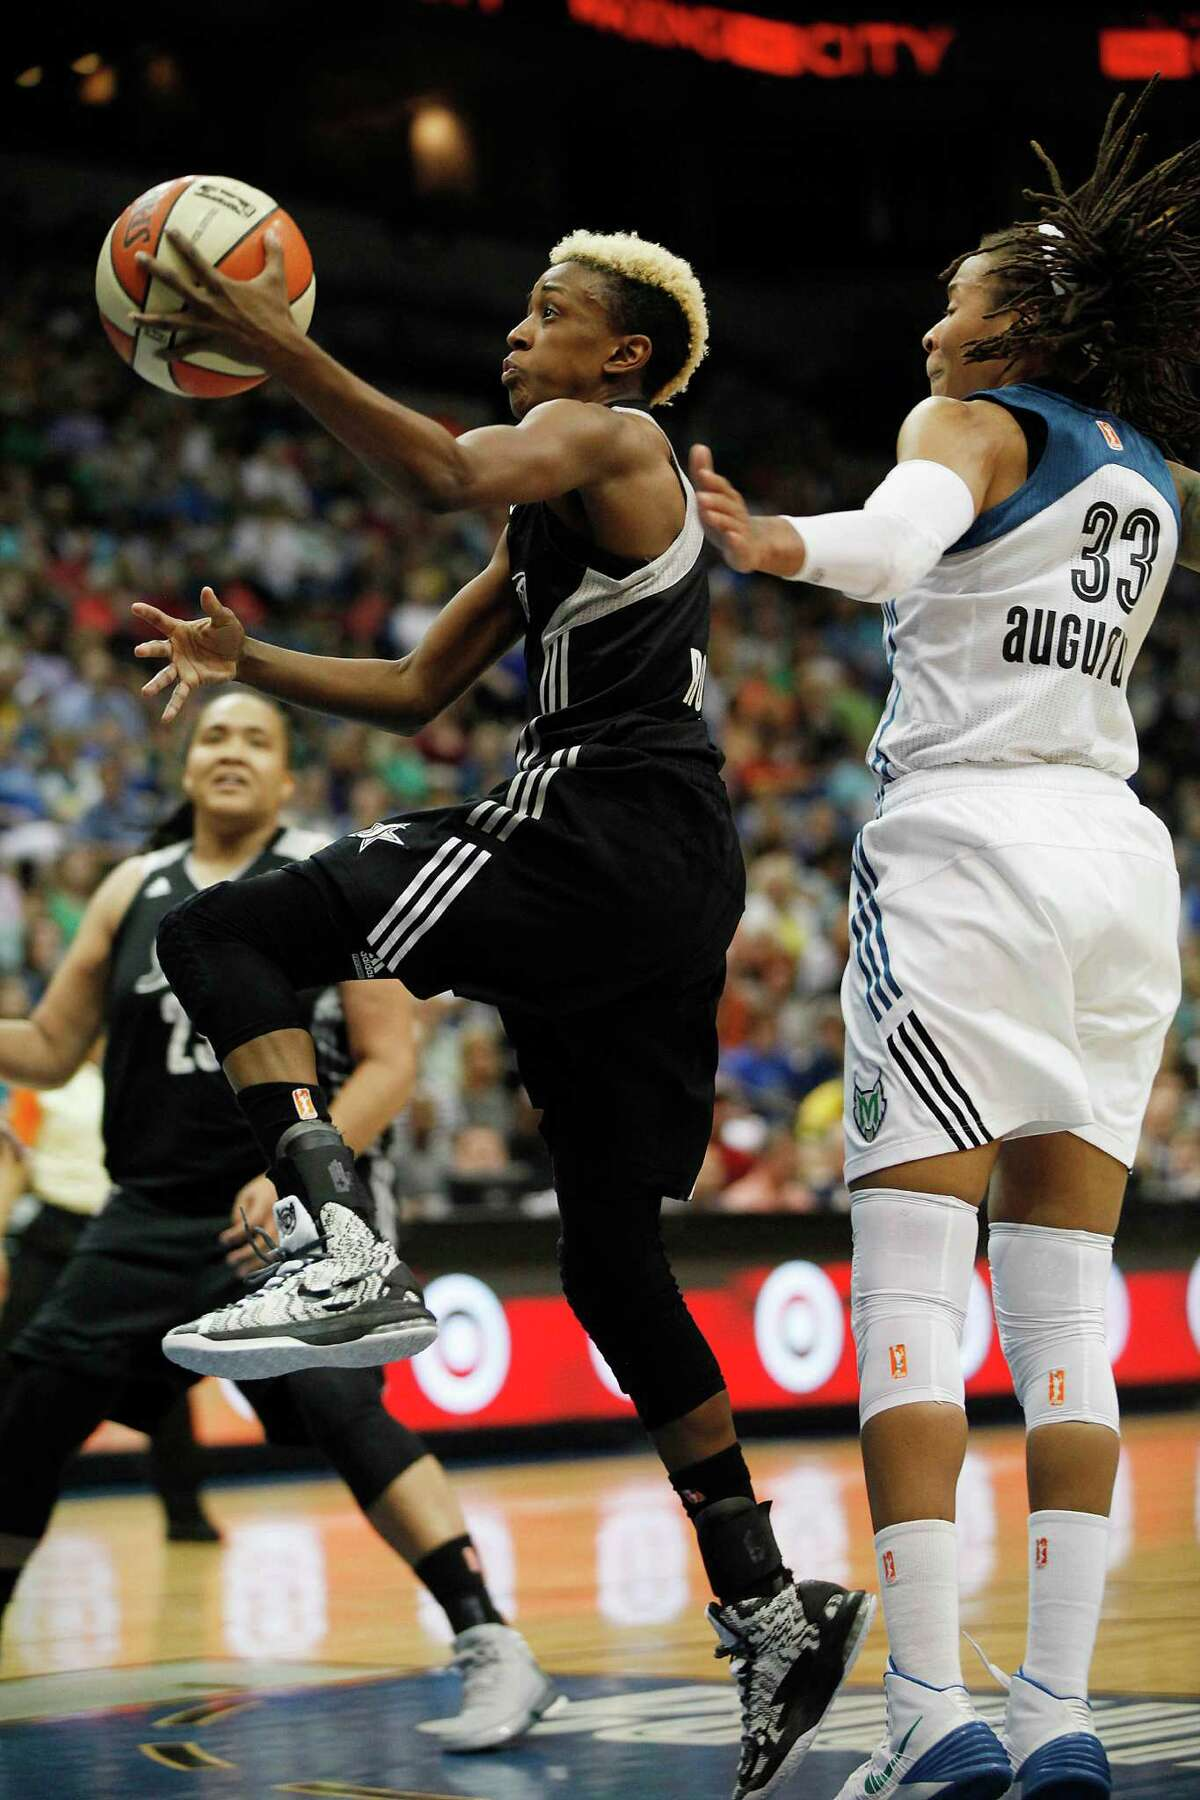 San Antonio Silver Stars guard Danielle Robinson, center, drives to the basket past Minnesota Lynx guard Seimone Augustus,right, in the second half of a WNBA basketball game, Friday, August 2, 2013, in Minneapolis. The Lynx won 85-63. (AP Photo/Stacy Bengs)